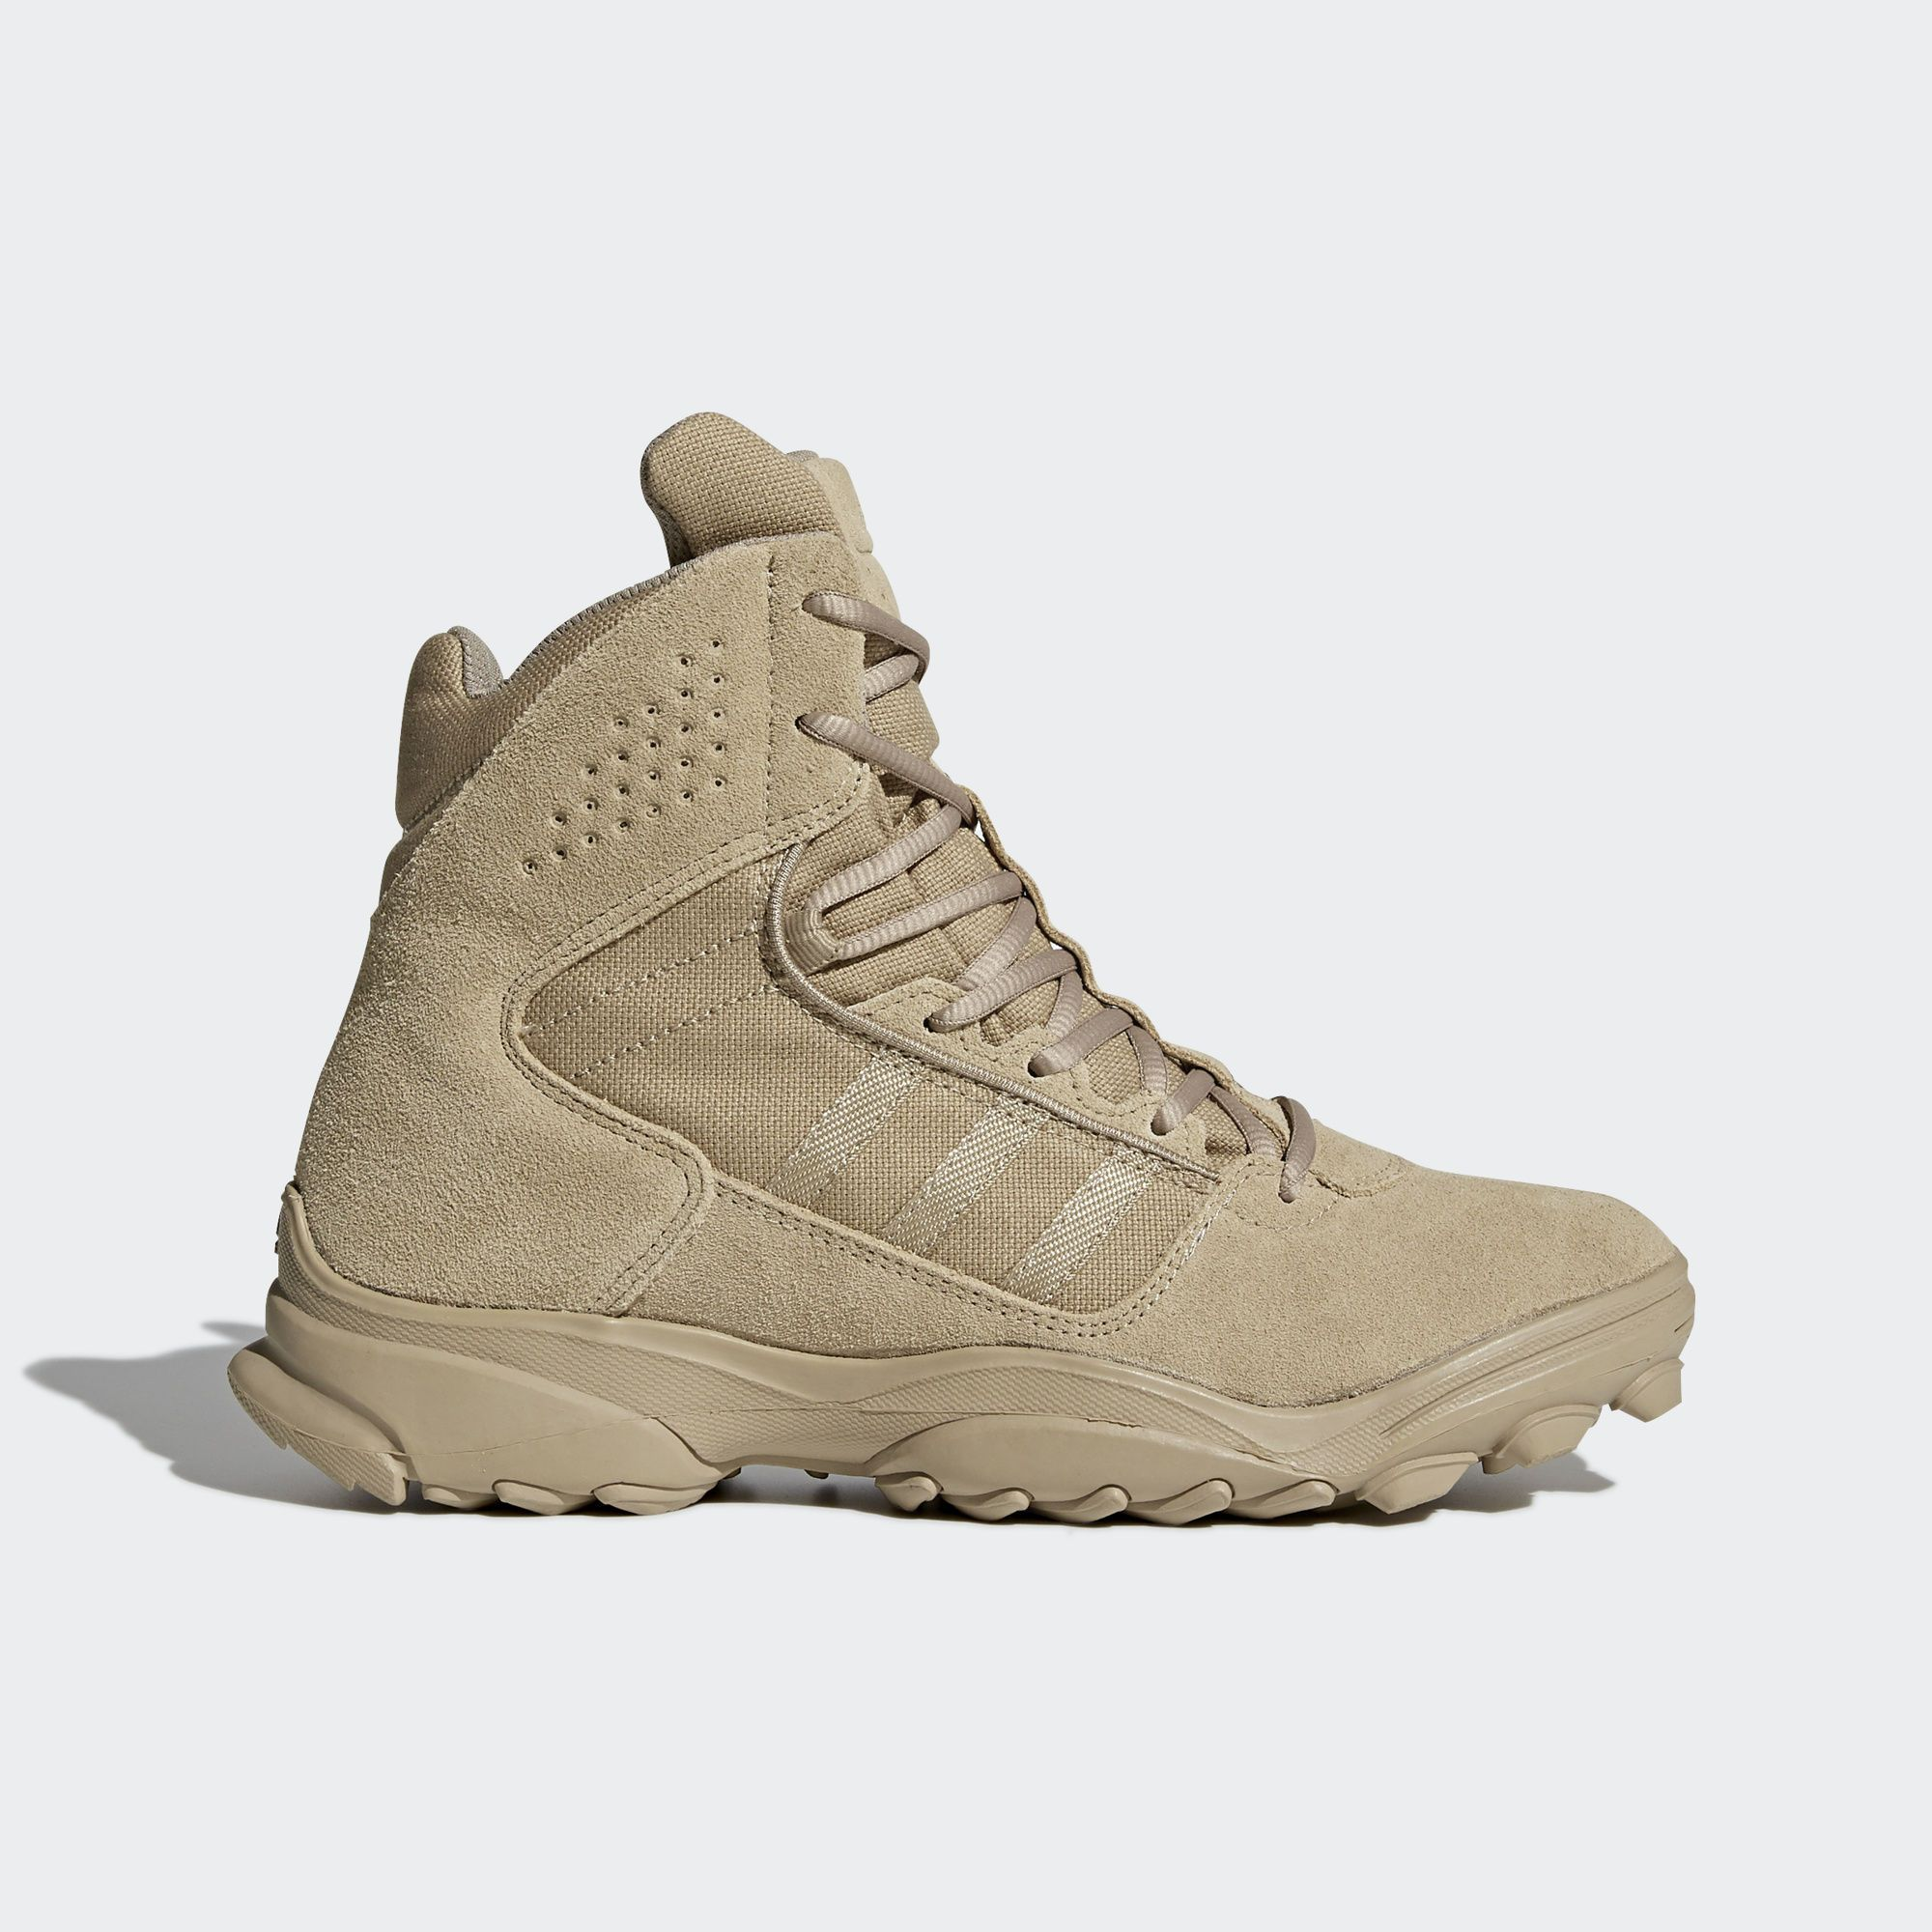 These Men S Boots Come With The Rugged Features Of An Outdoor Boot And The Comfort And Performance Of An Athletic Shoe Adidas Boots Boots Adidas Hiking Shoes